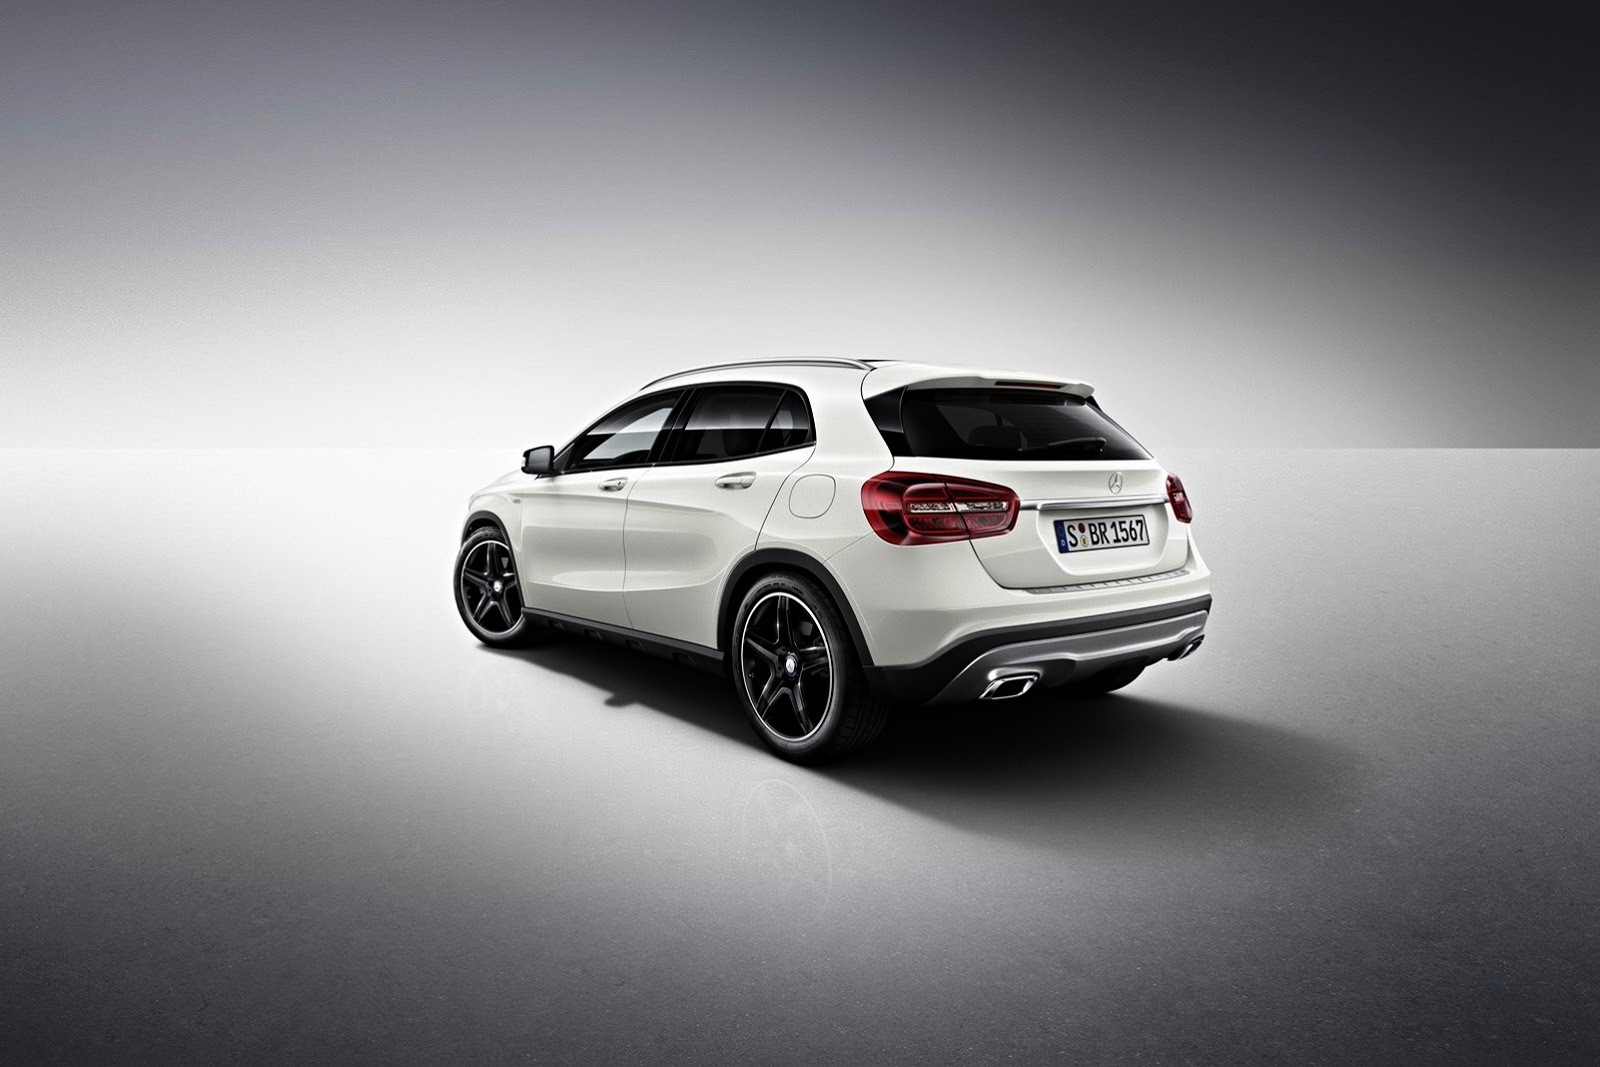 Mercedes benz gla edition 1 euro orders open from next month for 2013 mercedes benz gla